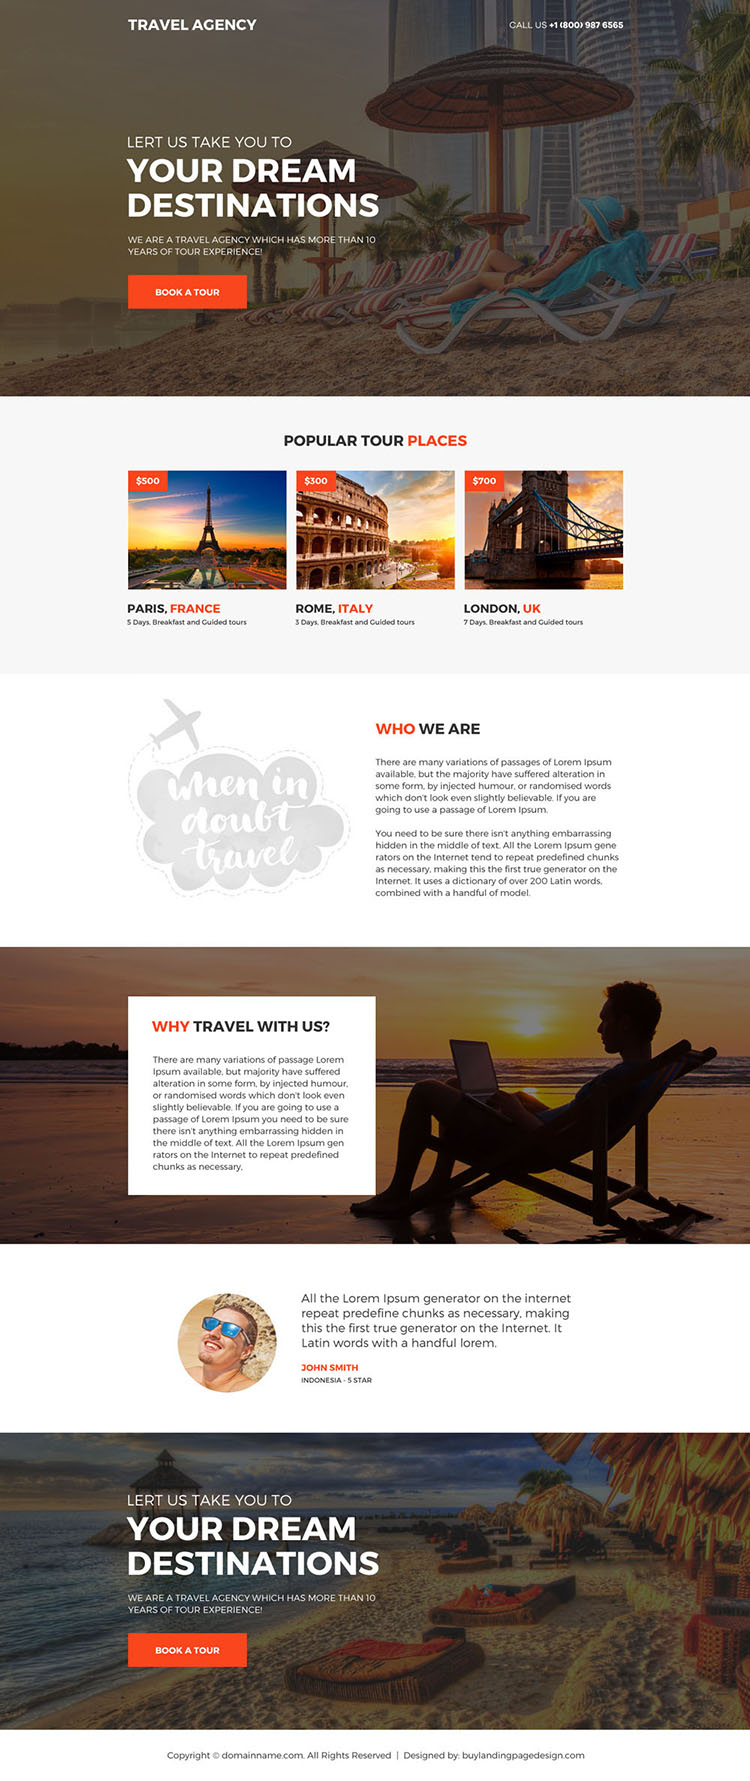 travel agency call to action mini landing page design